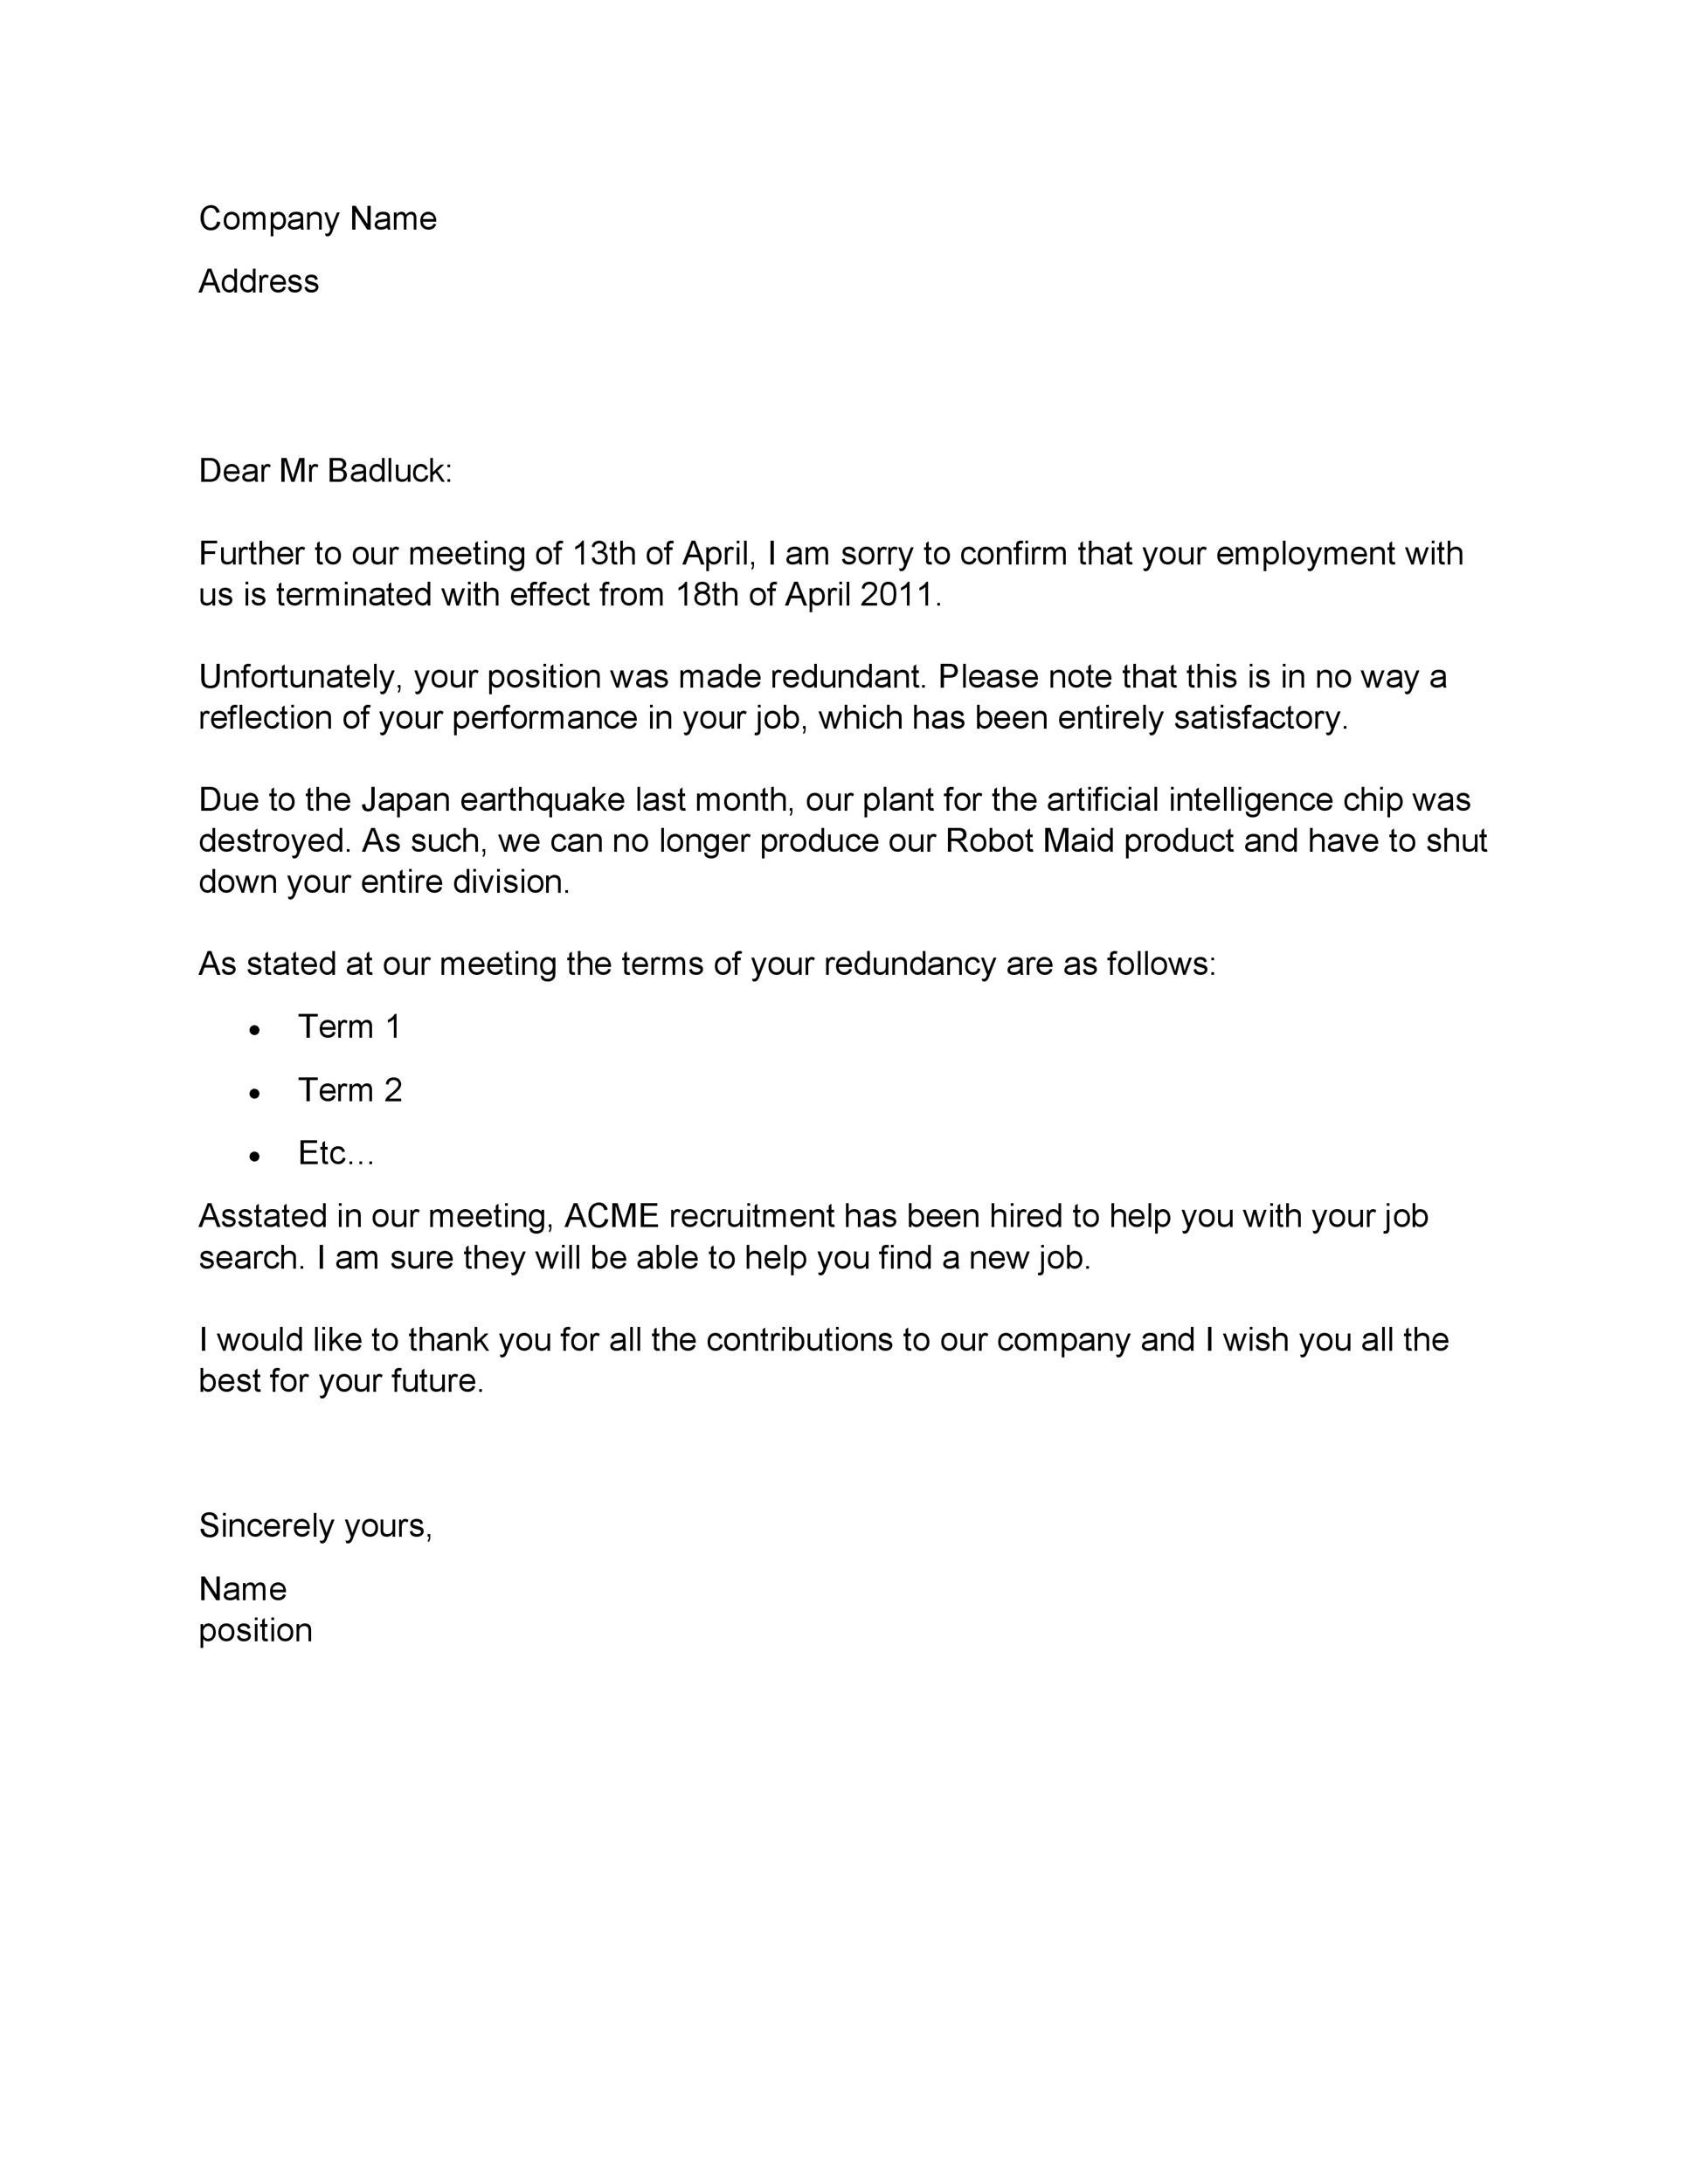 Letter From Employer That Insurance Termed